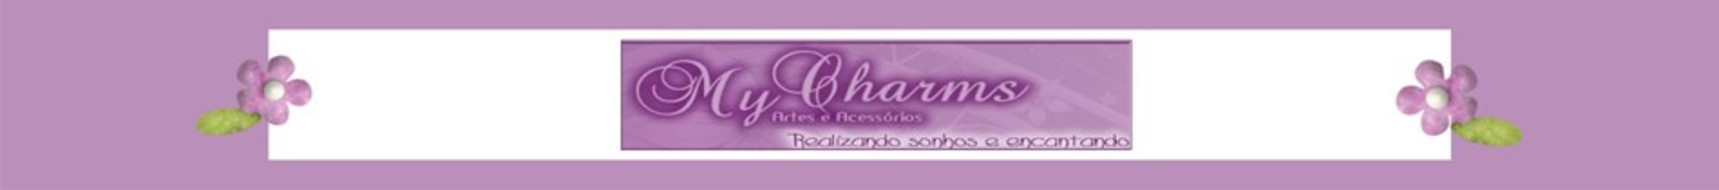 My Charms Artes e Acessrios